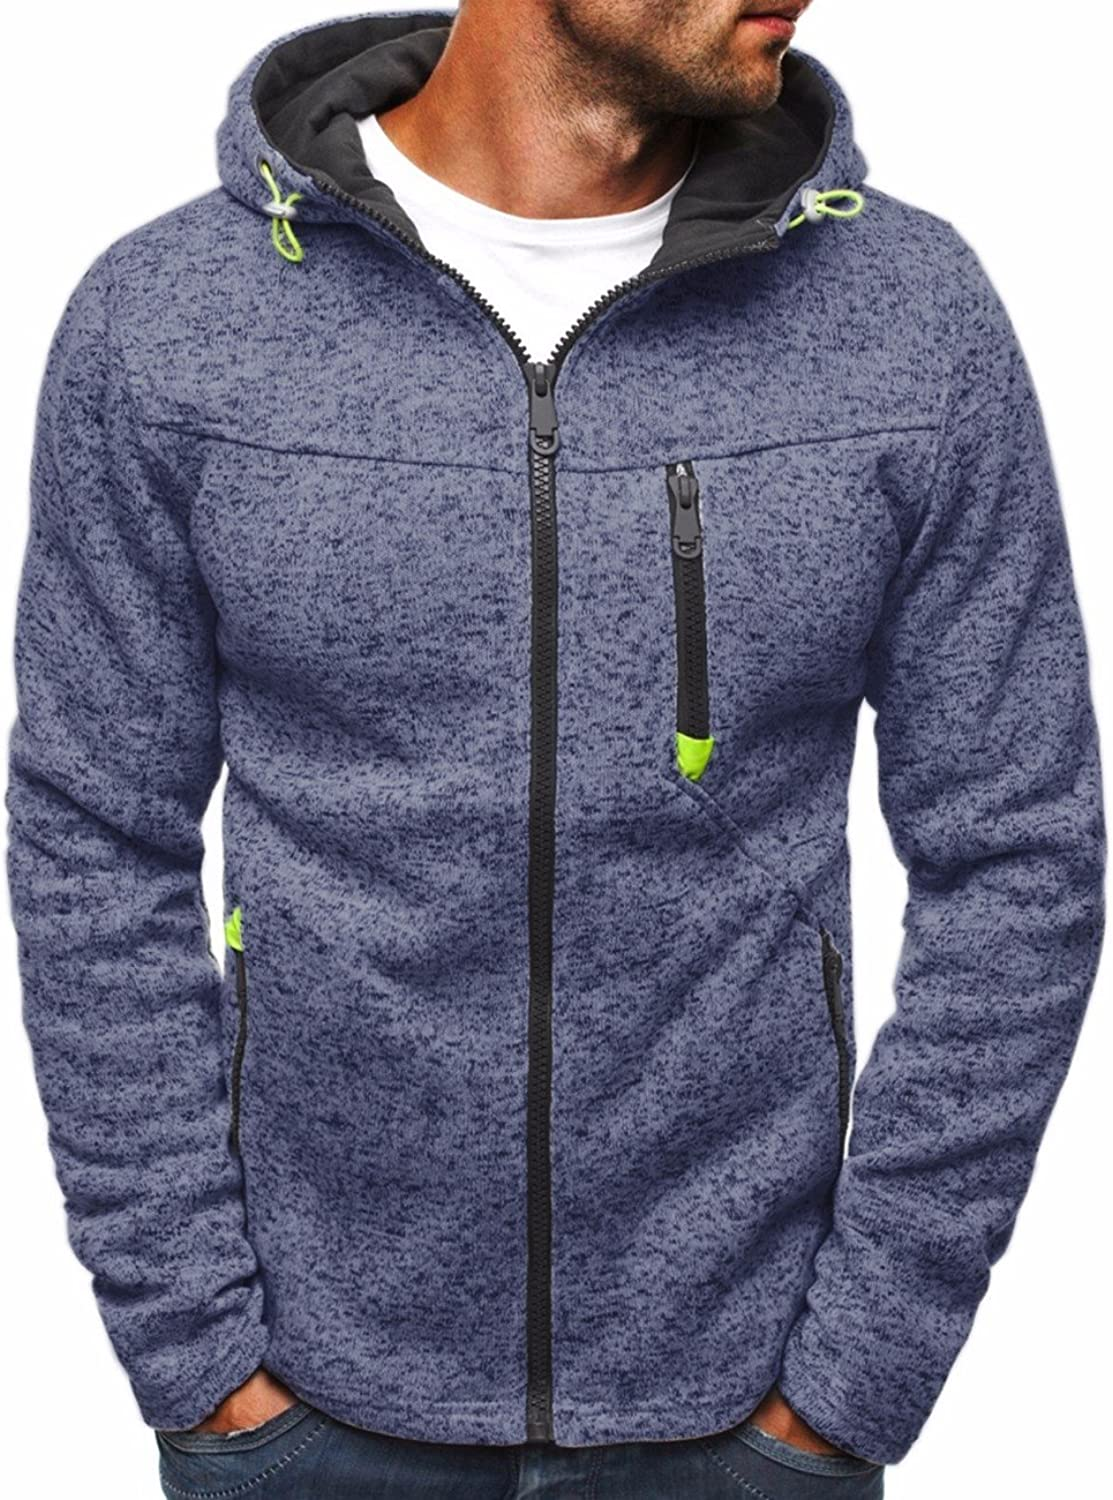 Imagine Men's Autumn Lightweight Fleece Zip Up Hoodies Coat Sweatshirts Jacket with Pocket